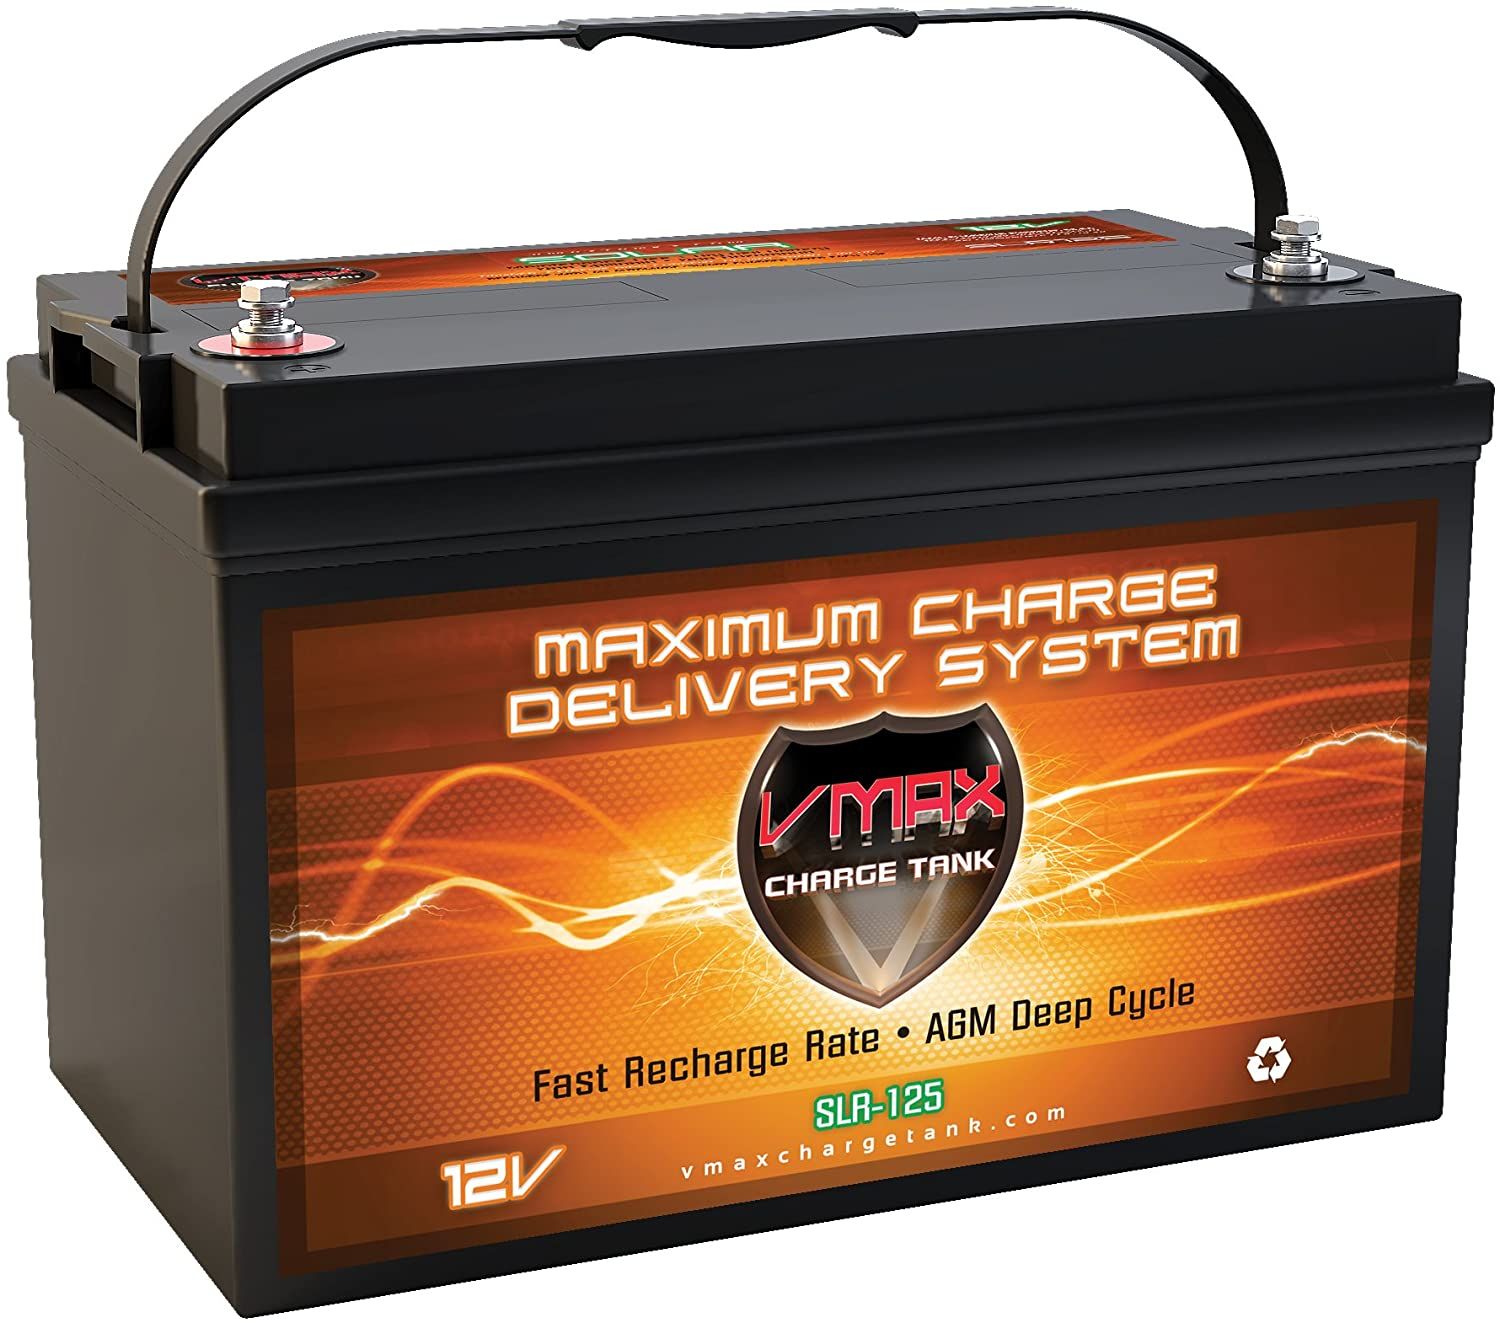 Vmaxtanks AGM 12V VMAXSLR125 RV Battery